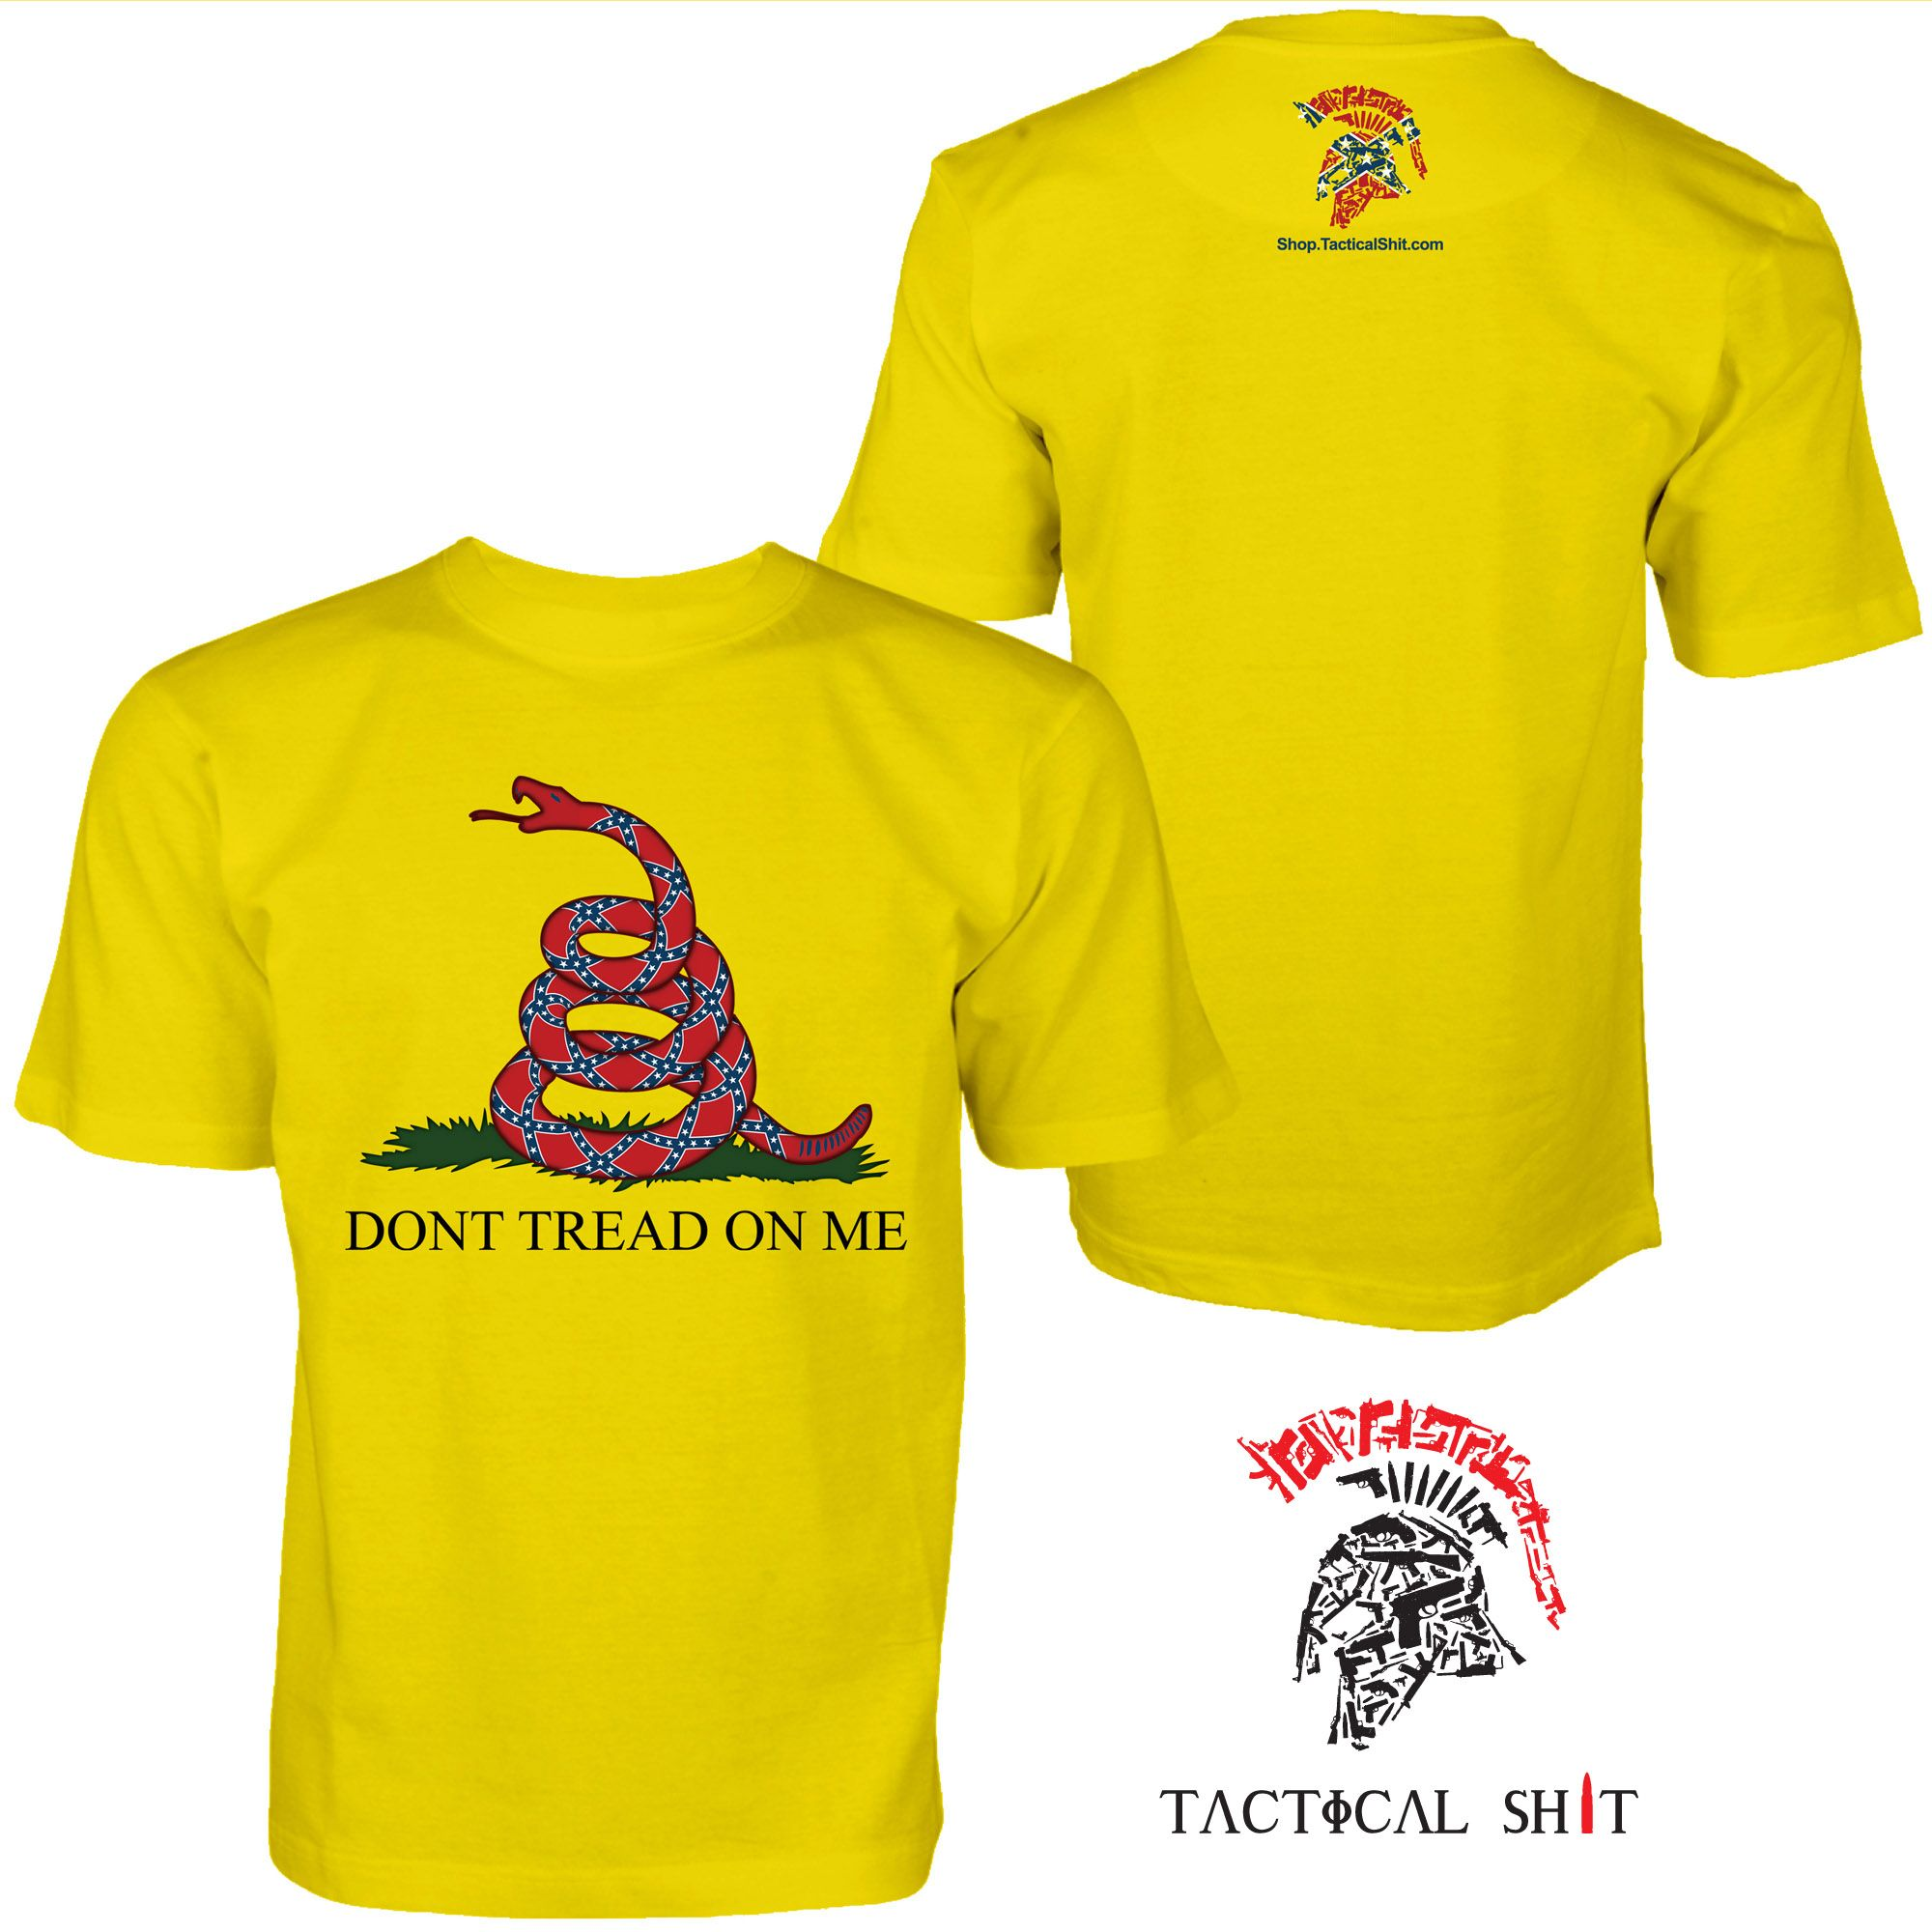 Dont Tread On Me Shirt >> Confederate Don T Tread On Me T Shirt